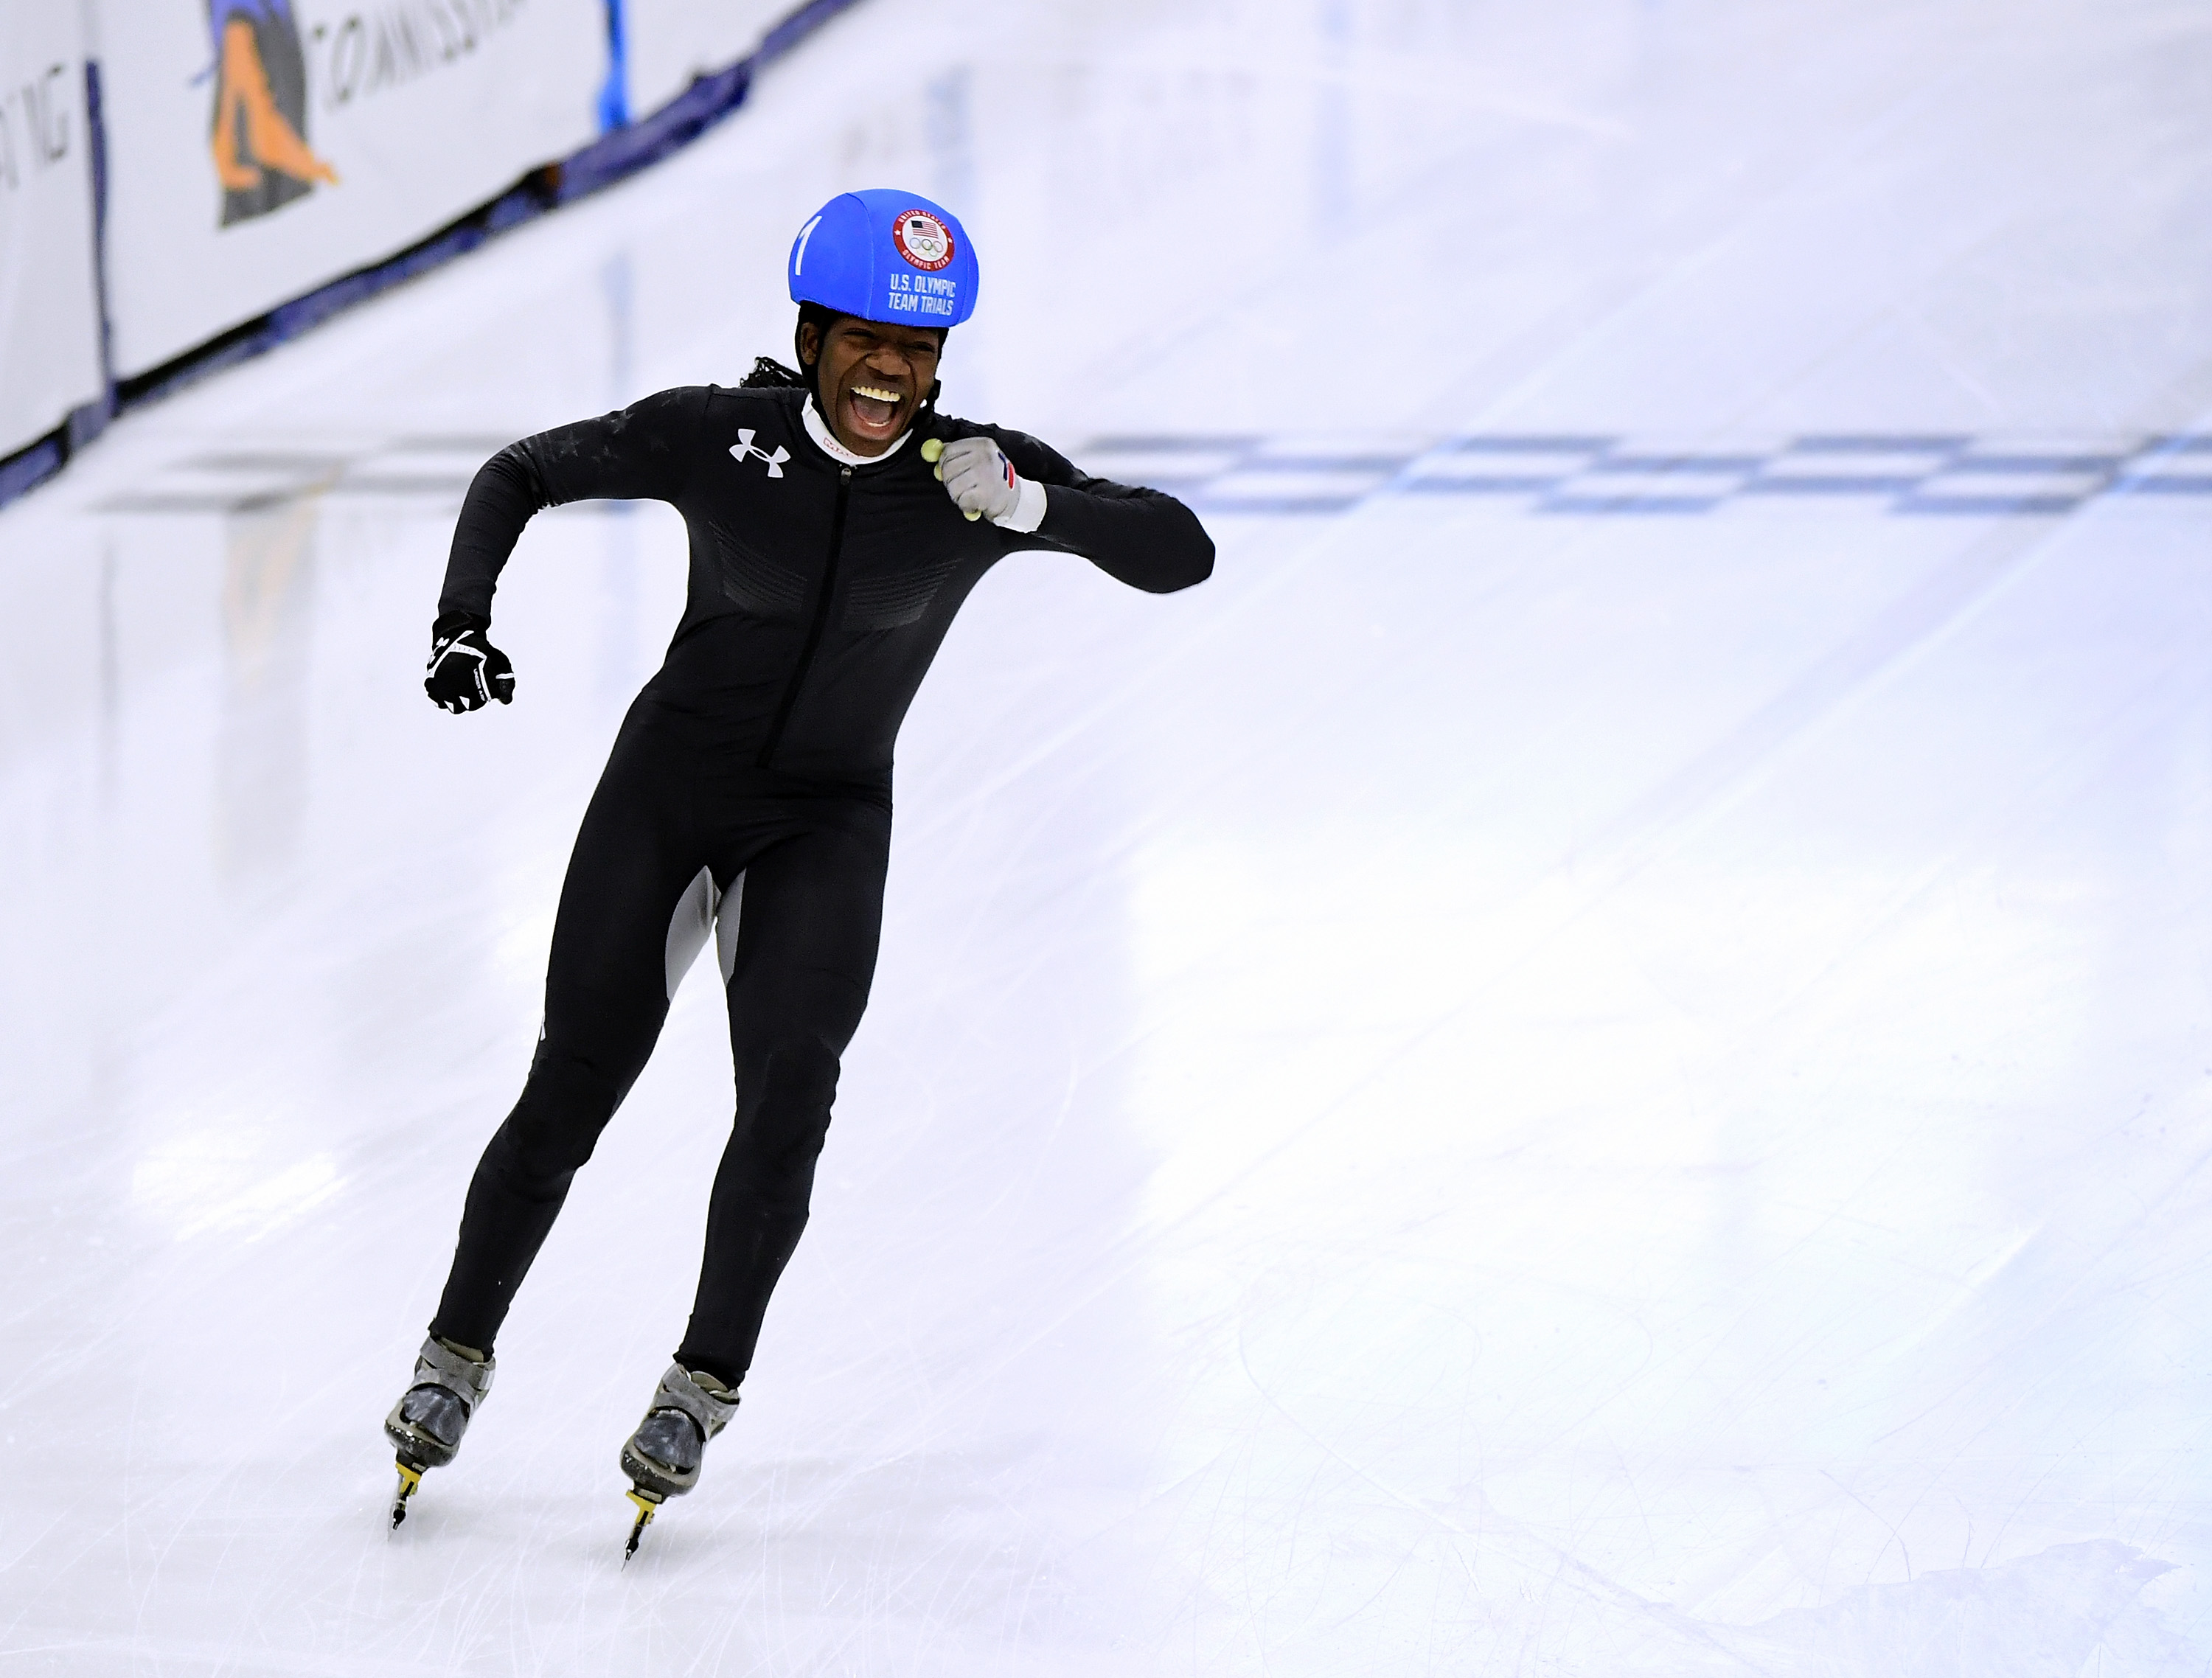 Maame Biney #1 celebrates victory in the Women's 500 Meter A Final for a spot on the Olympic team during the 2018 U.S. Speedskating Short Track Olympic Team Trials at the Utah Olympic Oval on December 16, 2017 in Salt Lake City, Utah.